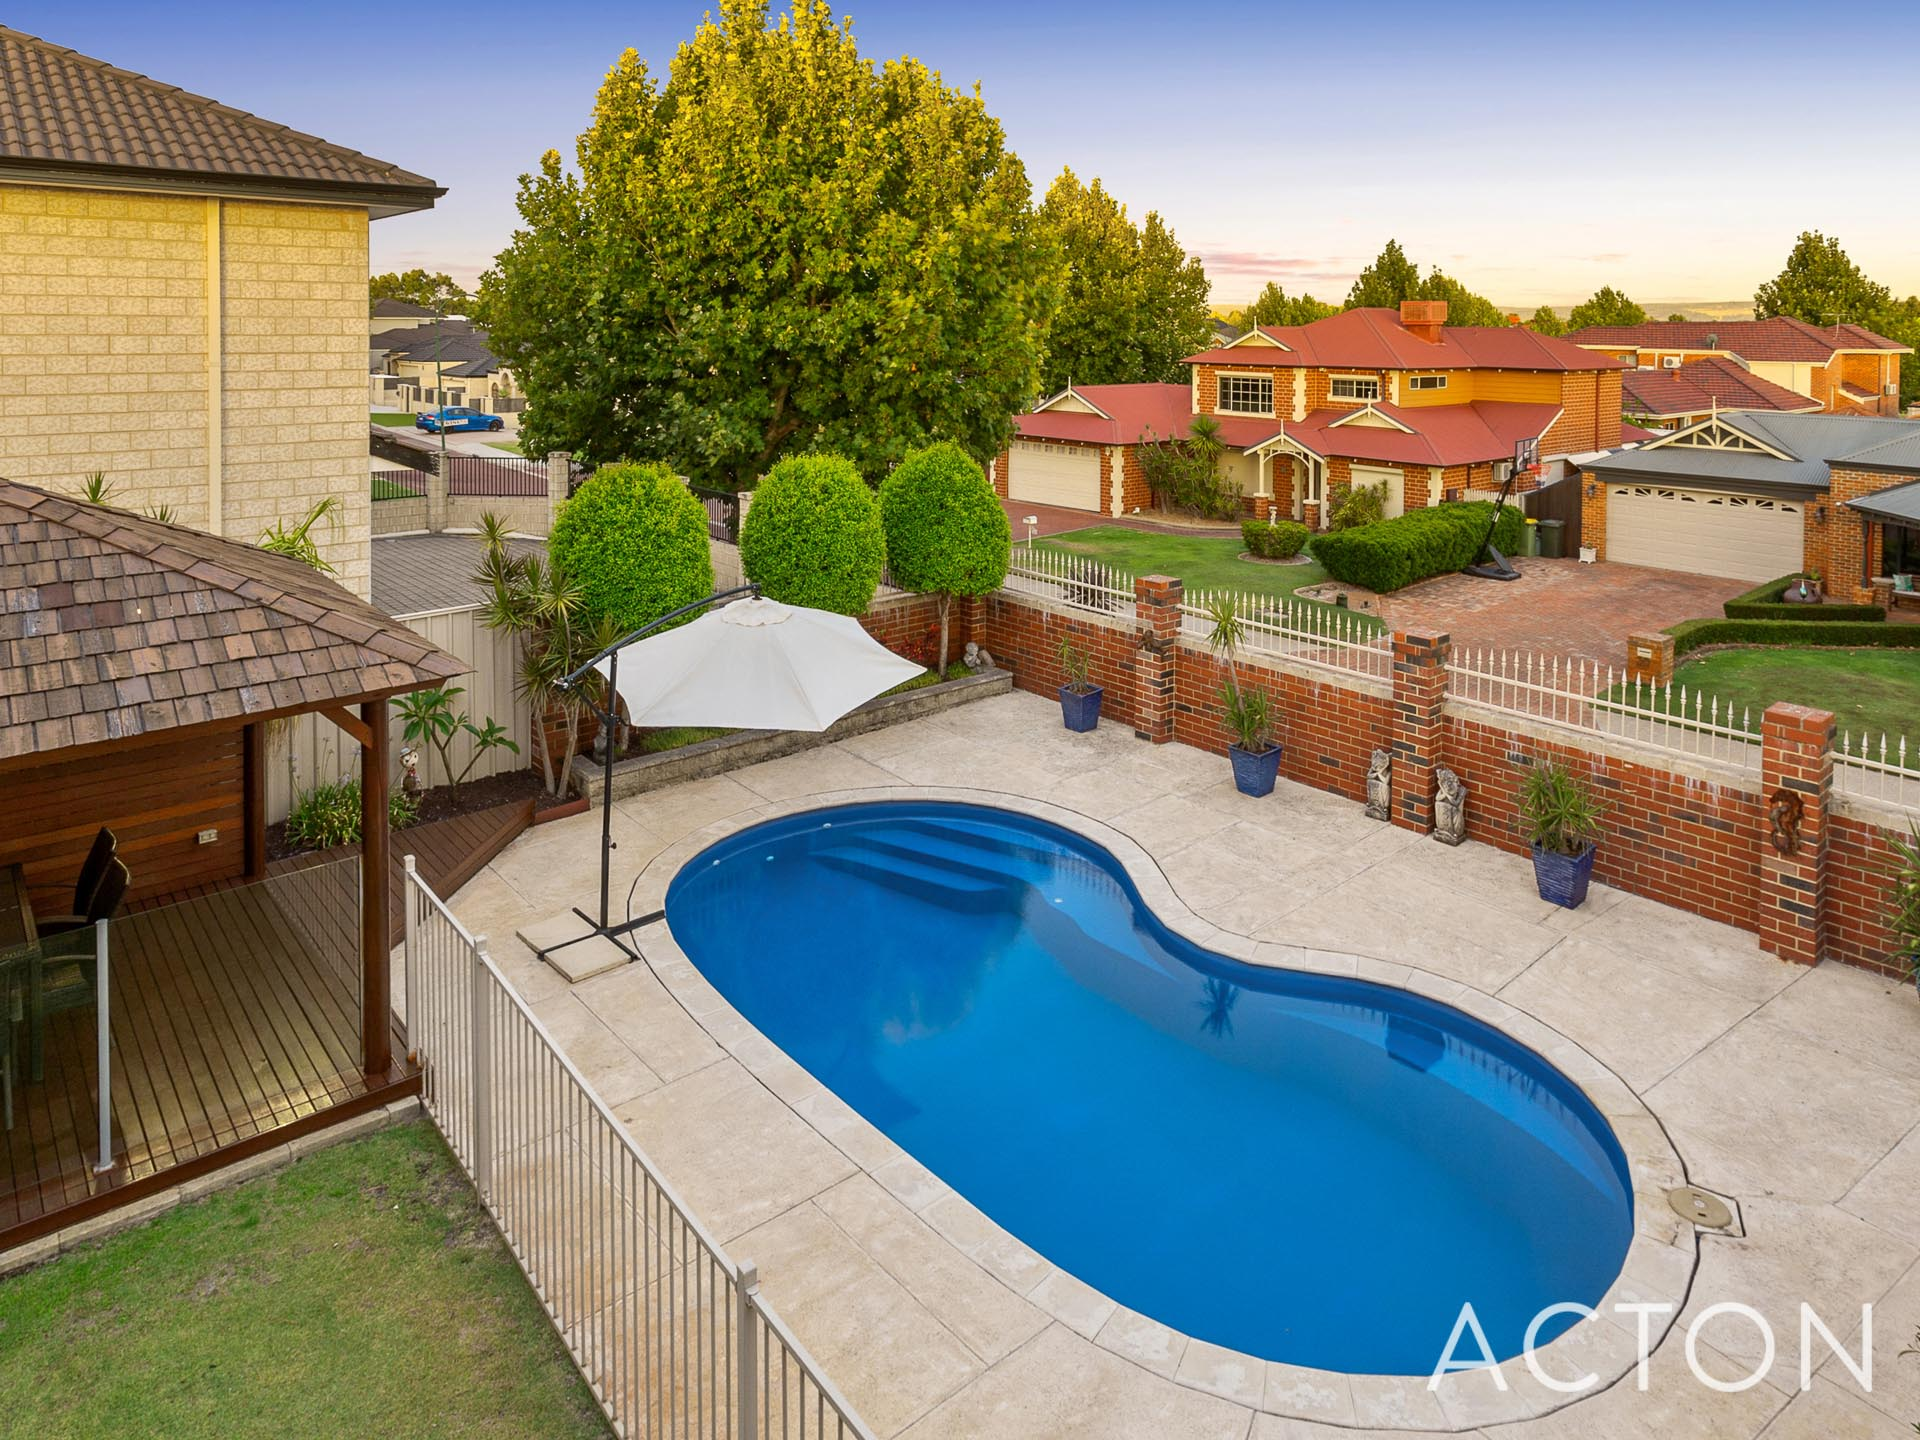 37 Samphire Road Canning Vale - House For Sale - 20273794 - ACTON Projects